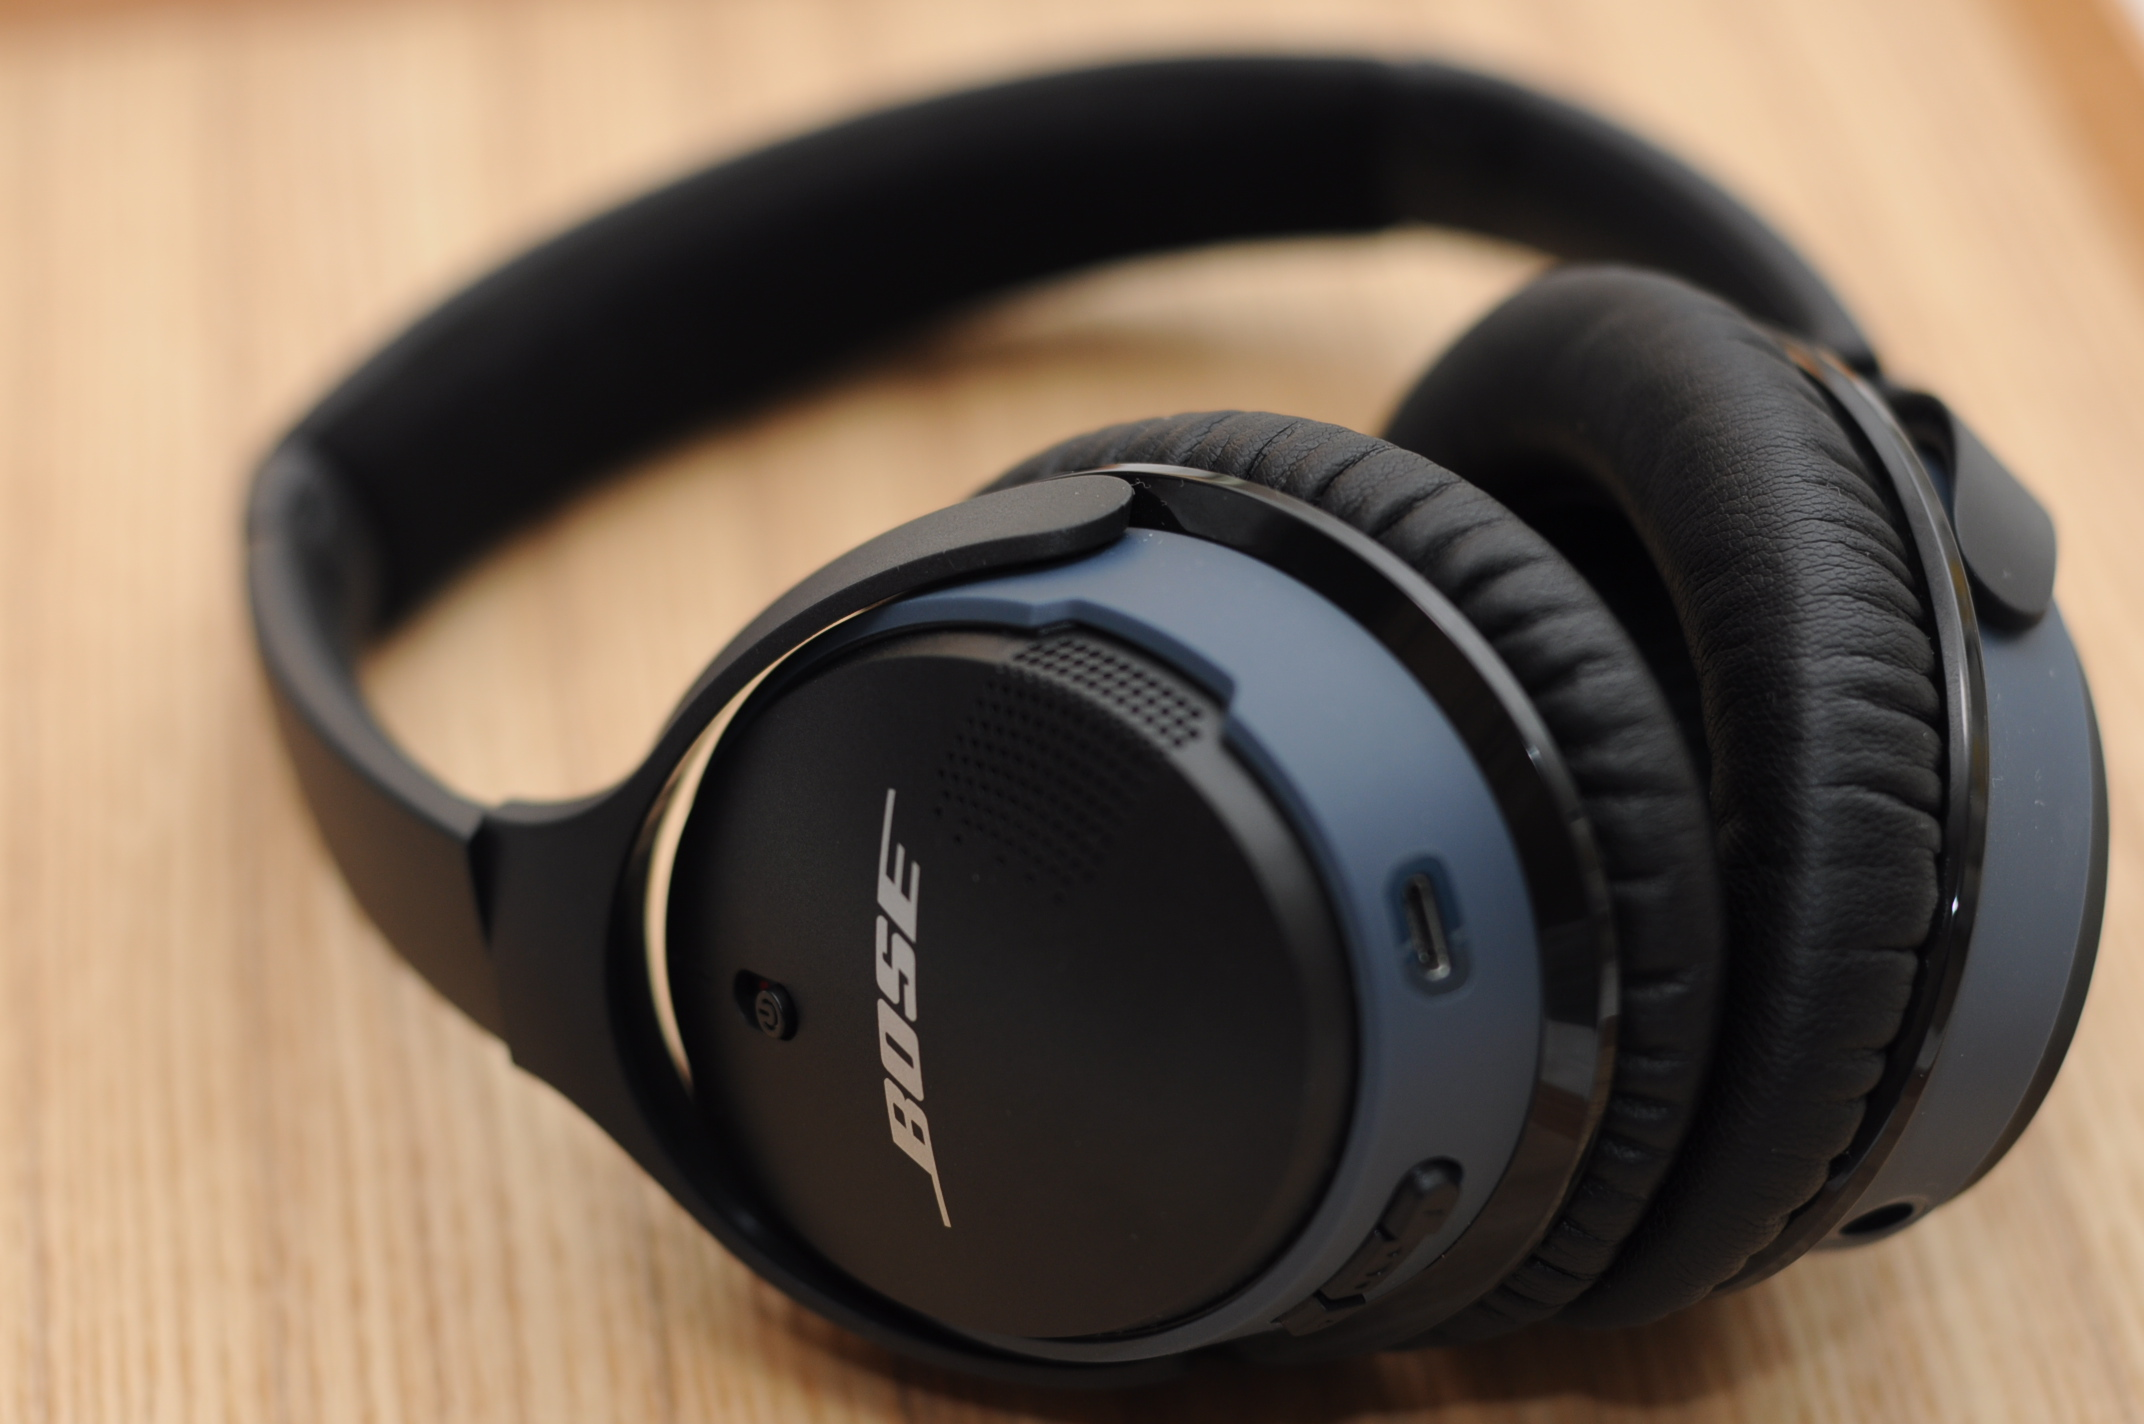 これは欲しい! Bose SoundLink around-ear wireless Headphones Ⅱ をレビューします。